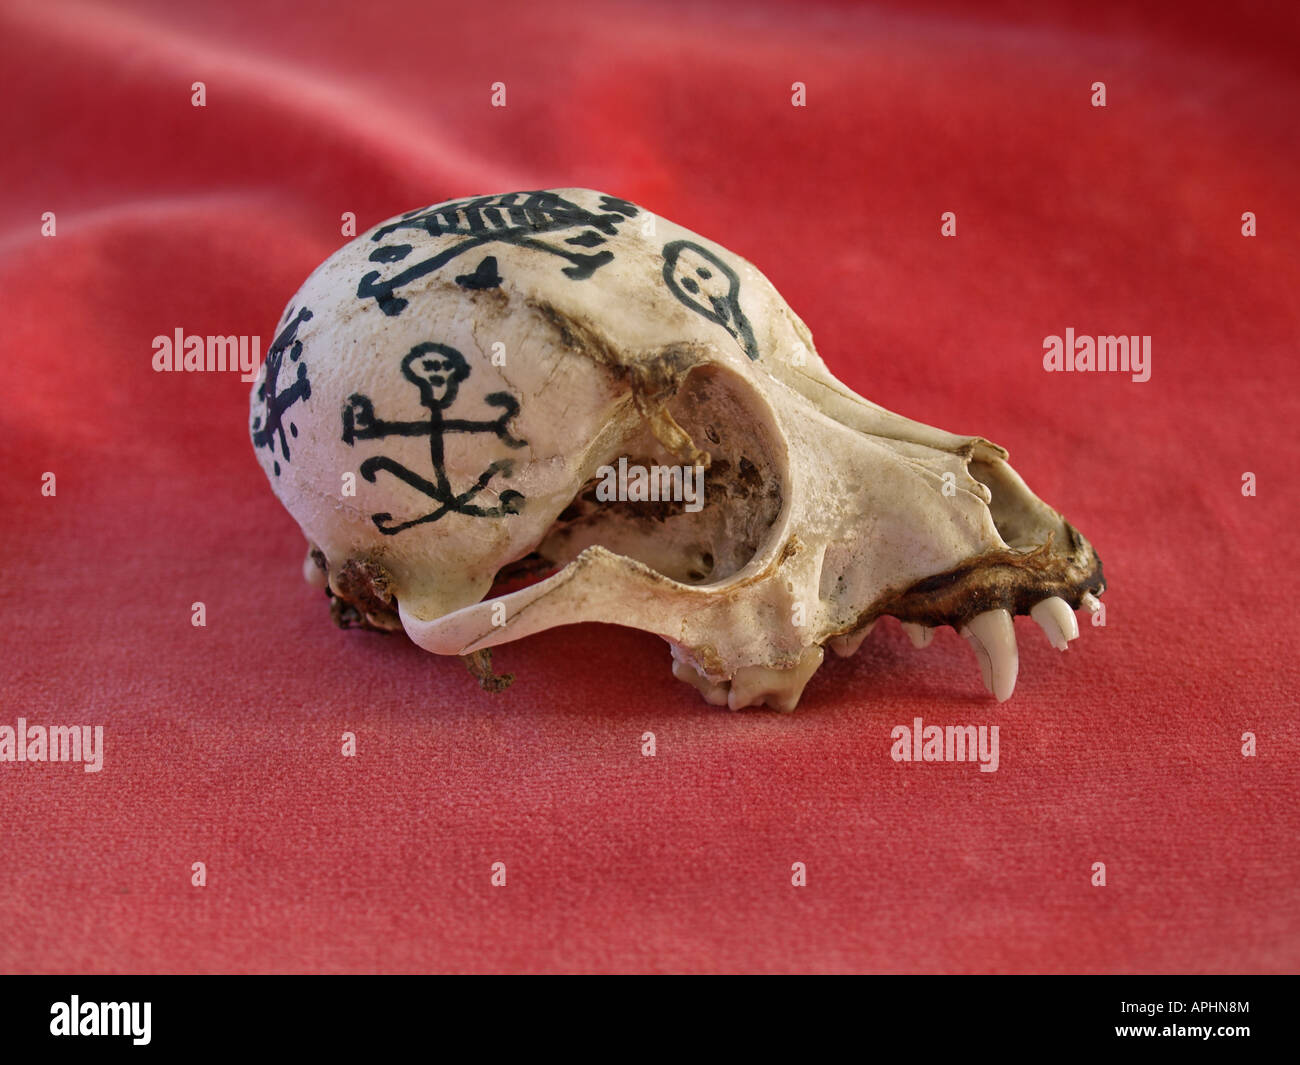 The skull of a dog with the Veve Design used in Voodoo to summon the various Loa or spirit deities - Stock Image